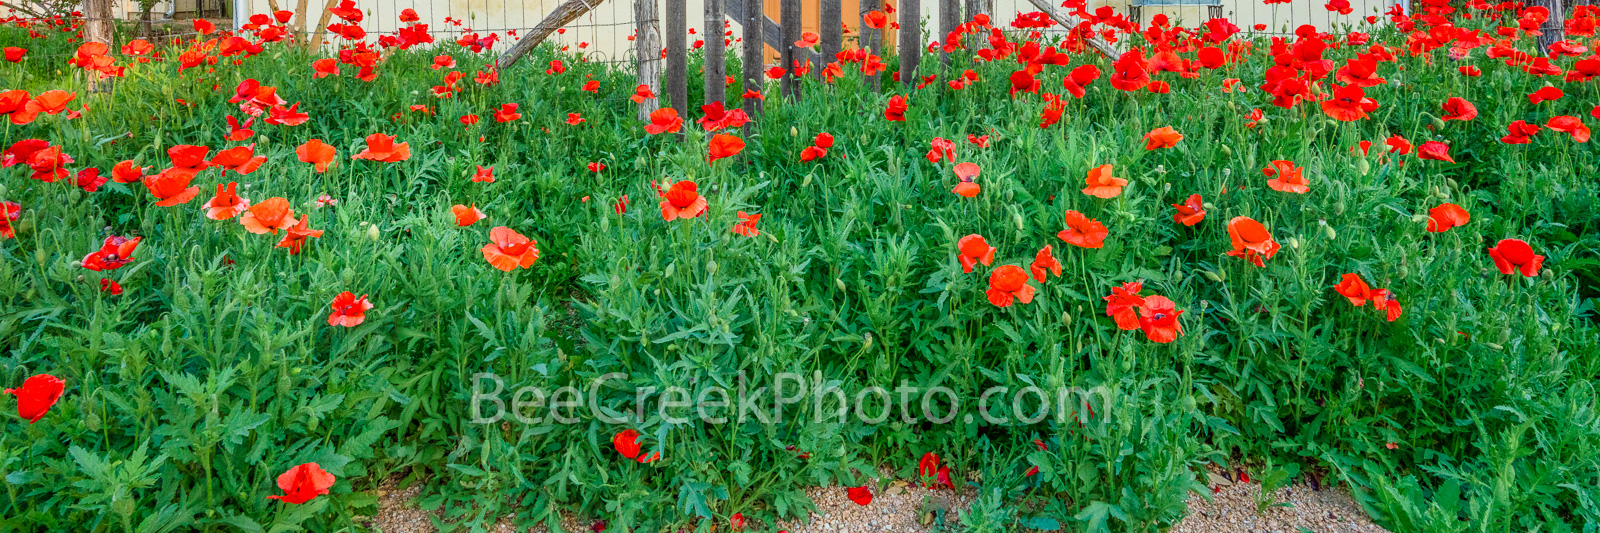 red corn poppies, poppy, red poppy, red poppies, texas, flowers, spring, springtime, poppy, poppies, corn rose, field poppy, flanders poppy, red poppy, red weed, coquelicot, papaveraceae, plant, close up,